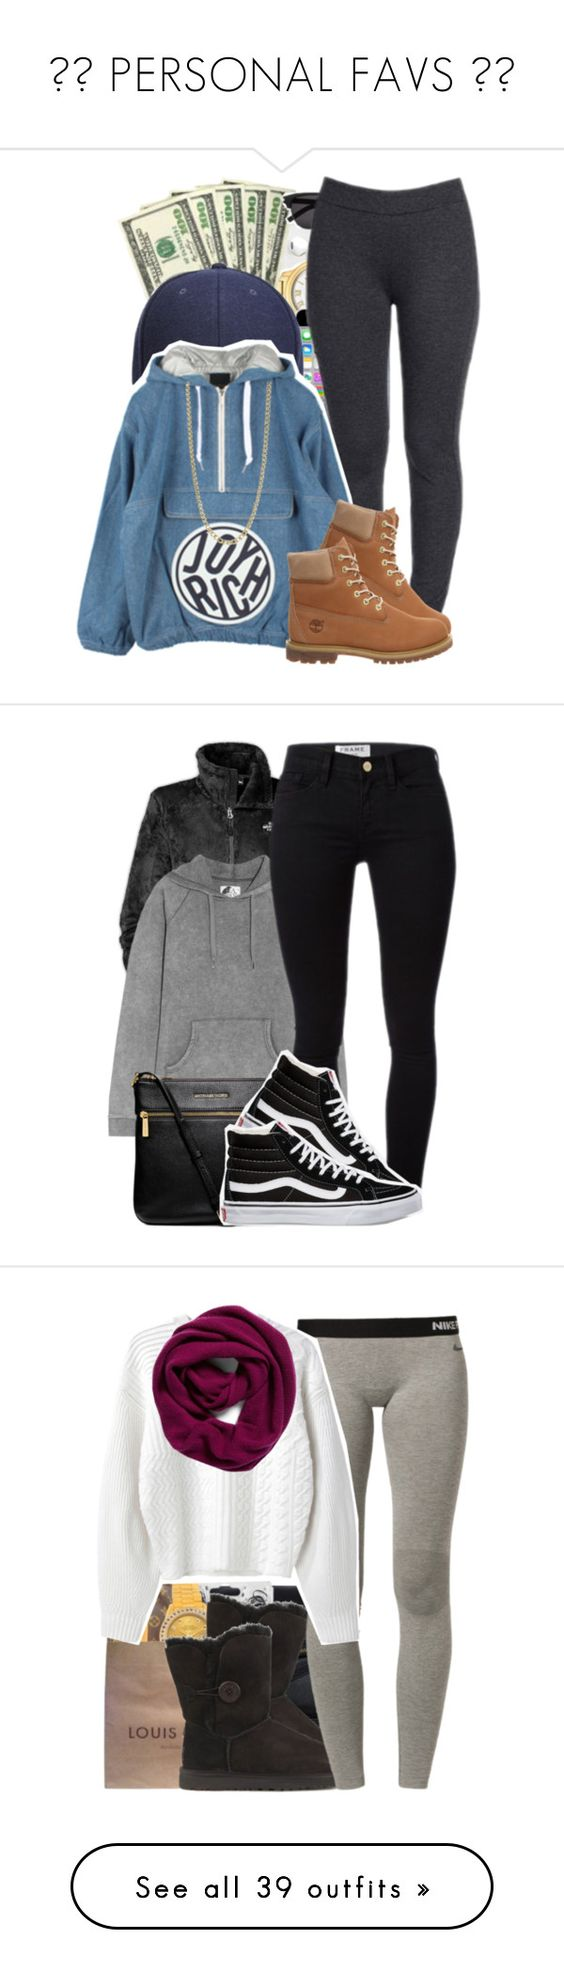 """"""" PERSONAL FAVS """" by society-is-ugly ❤ liked on Polyvore featuring NYDJ, Joyrich, Timberland, FOSSIL, The North Face, Zoe Karssen, Frame Denim, MICHAEL Michael Kors, Vans and Michael Kors"""